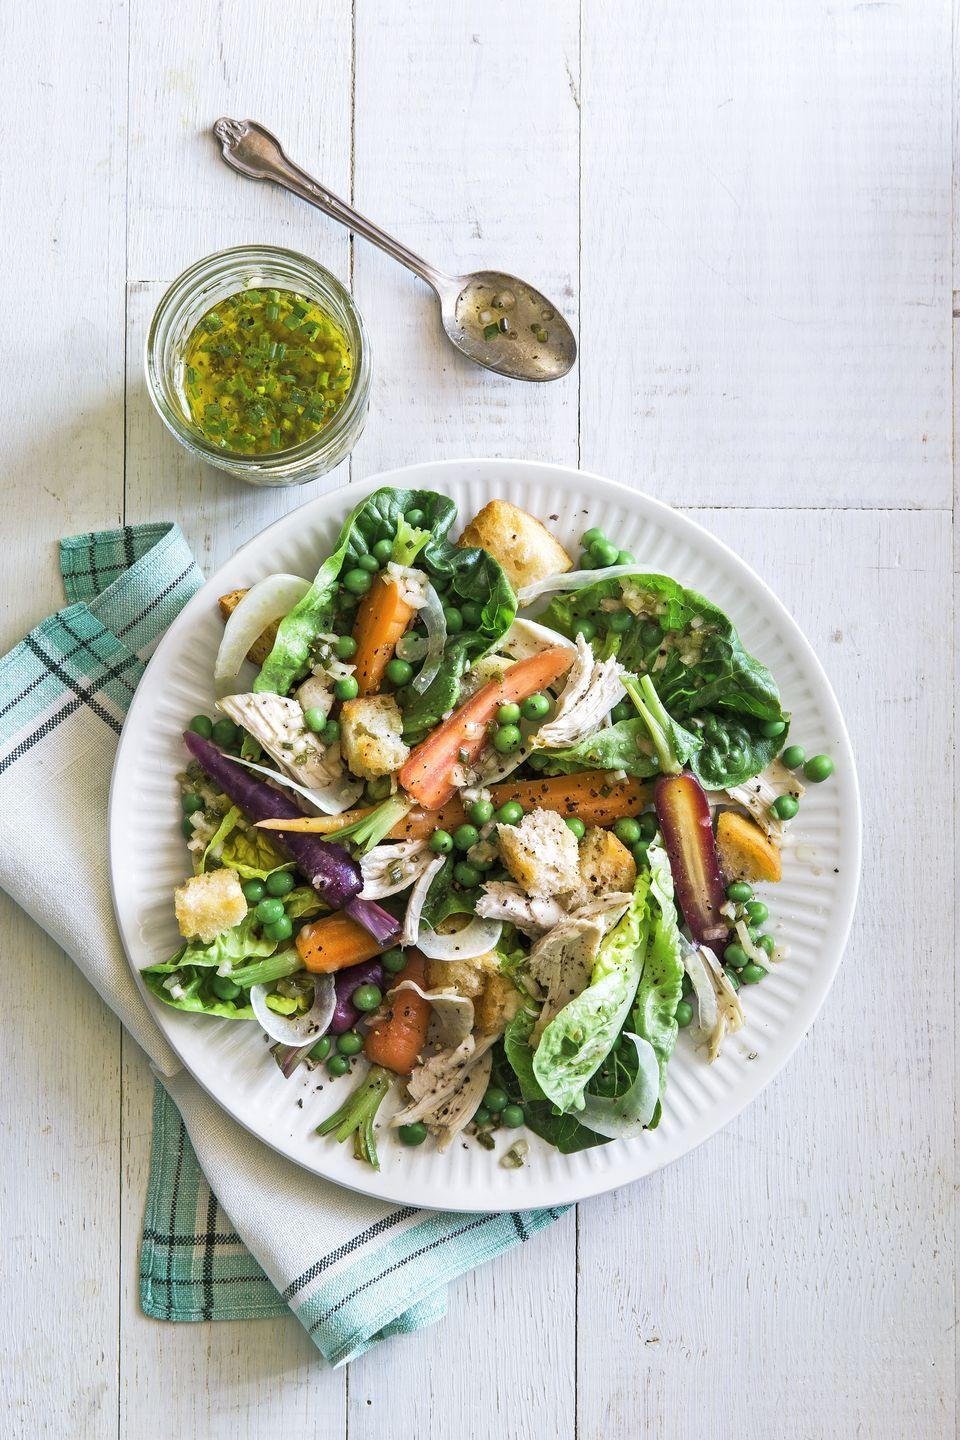 """<p>This crunchy salad gets a protein boost from rotisserie chicken.</p><p><strong><a href=""""https://www.countryliving.com/food-drinks/recipes/a35069/crunch-carrot-pea-and-chicken-salad/"""" rel=""""nofollow noopener"""" target=""""_blank"""" data-ylk=""""slk:Get the recipe"""" class=""""link rapid-noclick-resp"""">Get the recipe</a>.</strong></p>"""